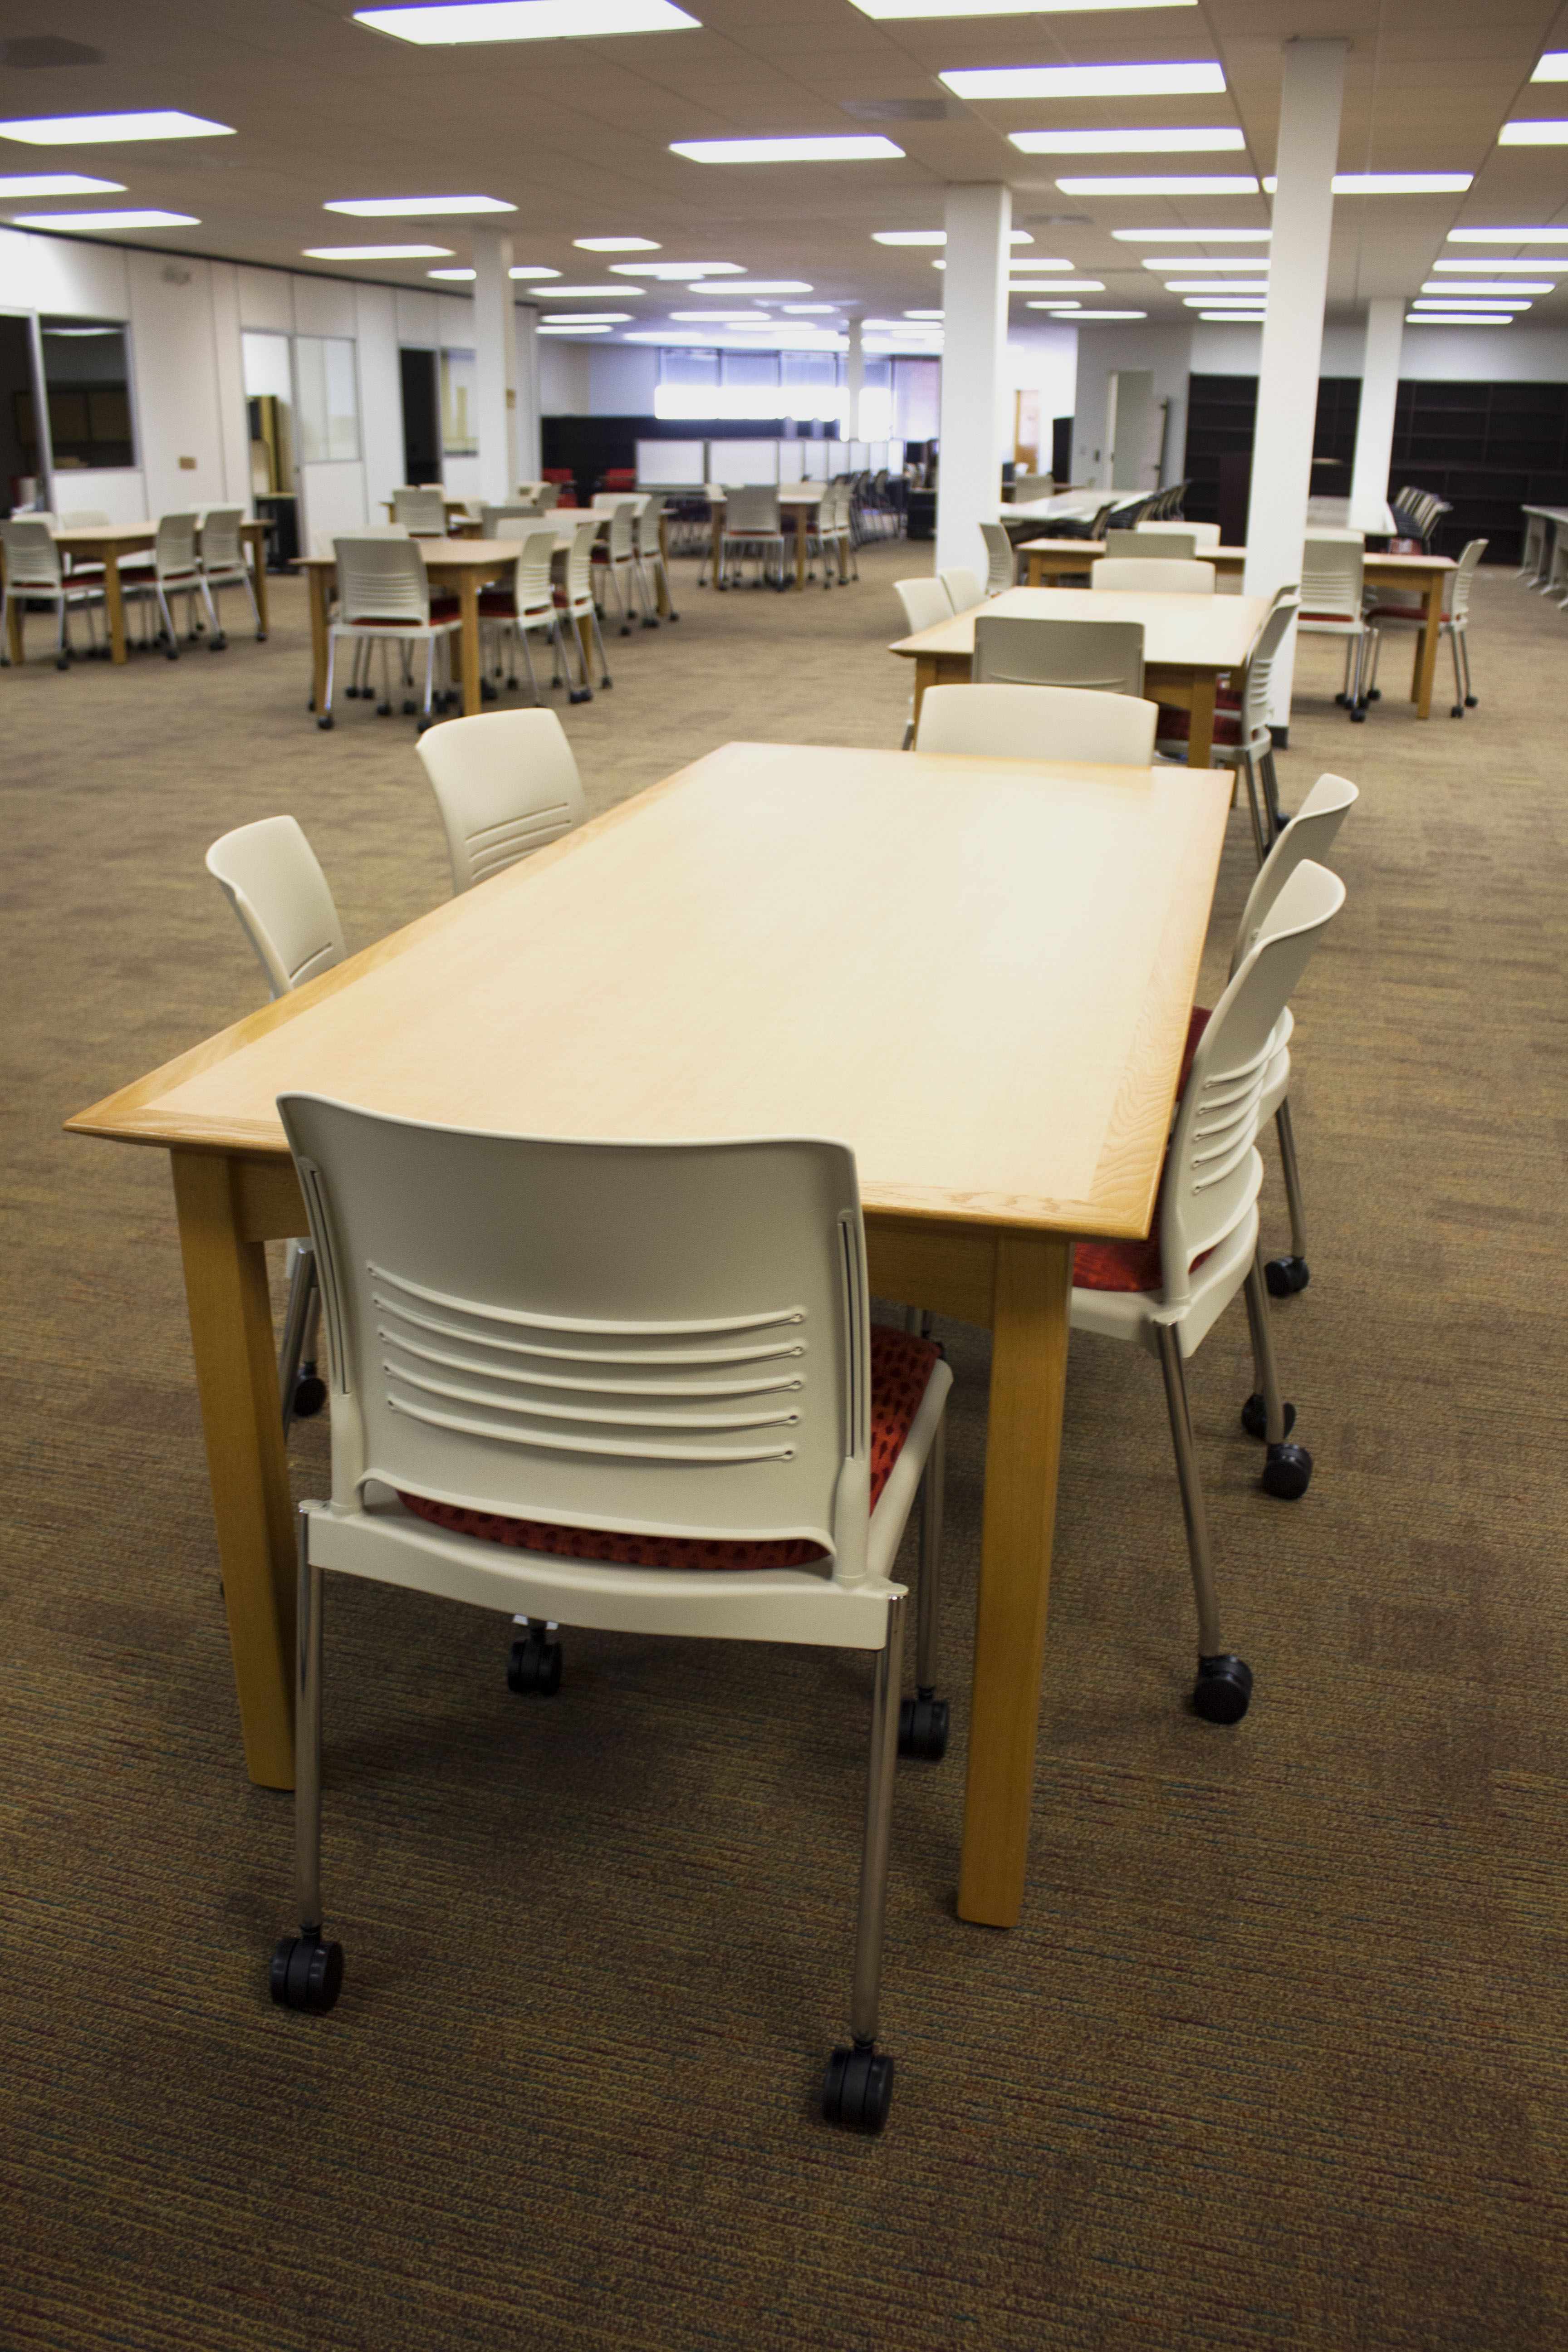 crossroads tables and strive upholstered seat chairs look great at